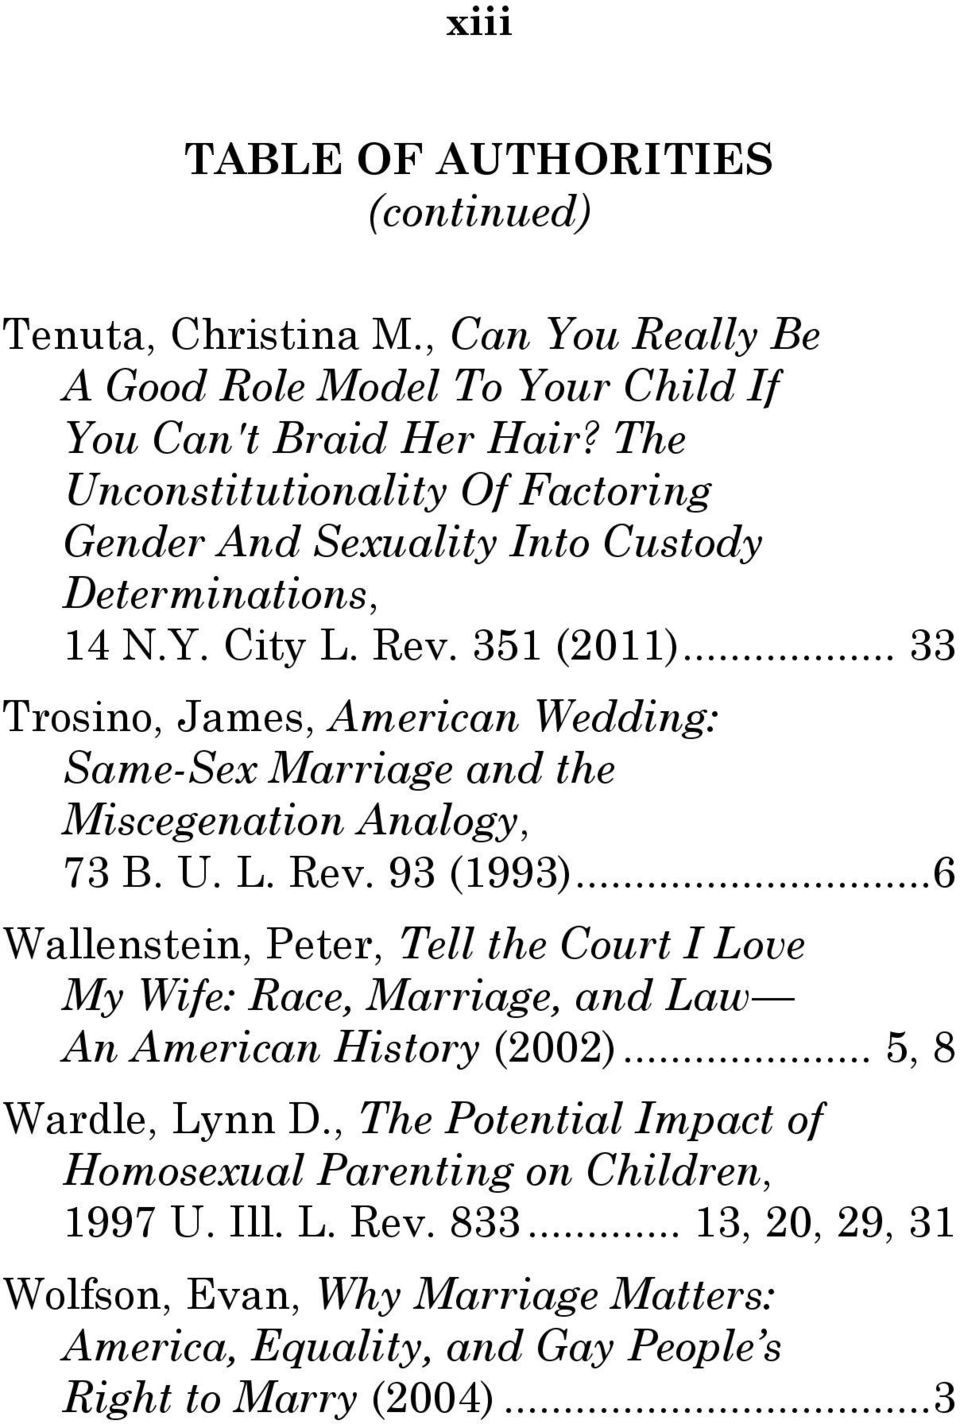 .. 33 Trosino, James, American Wedding: Same-Sex Marriage and the Miscegenation Analogy, 73 B. U. L. Rev. 93 (1993).